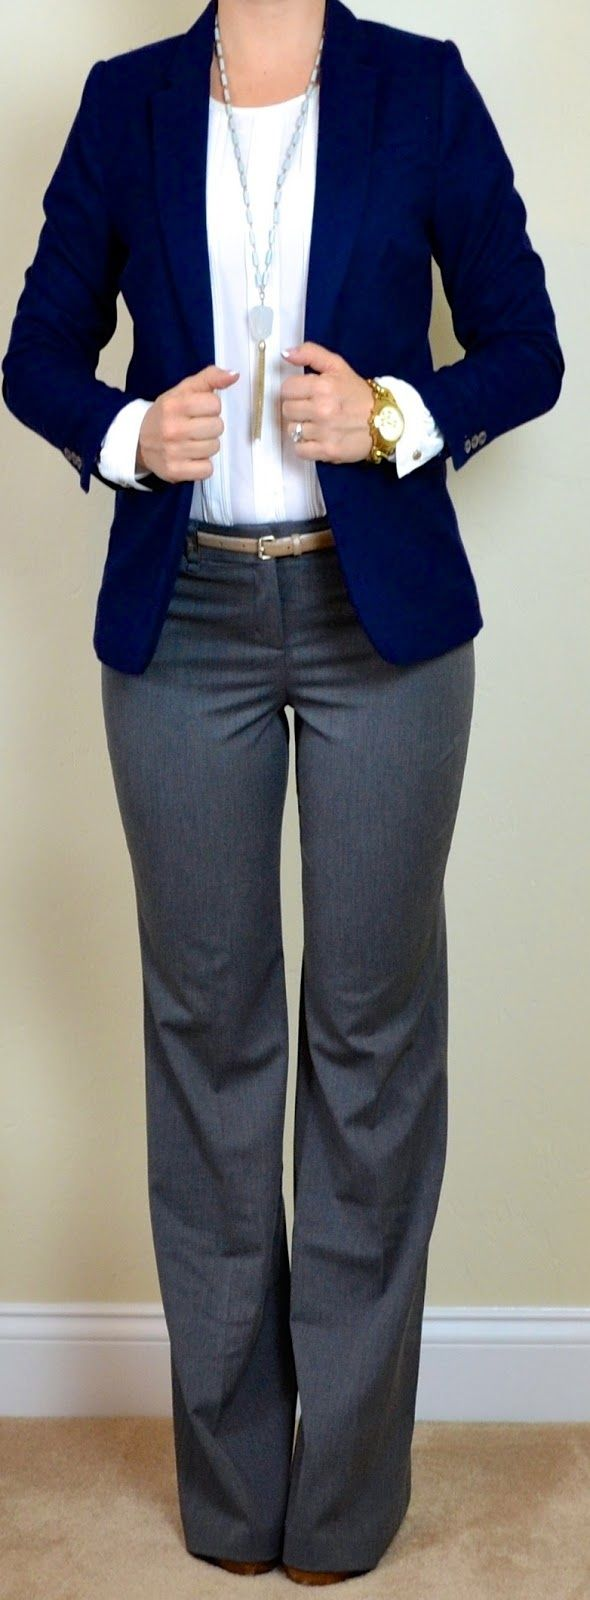 Super cute and business casual